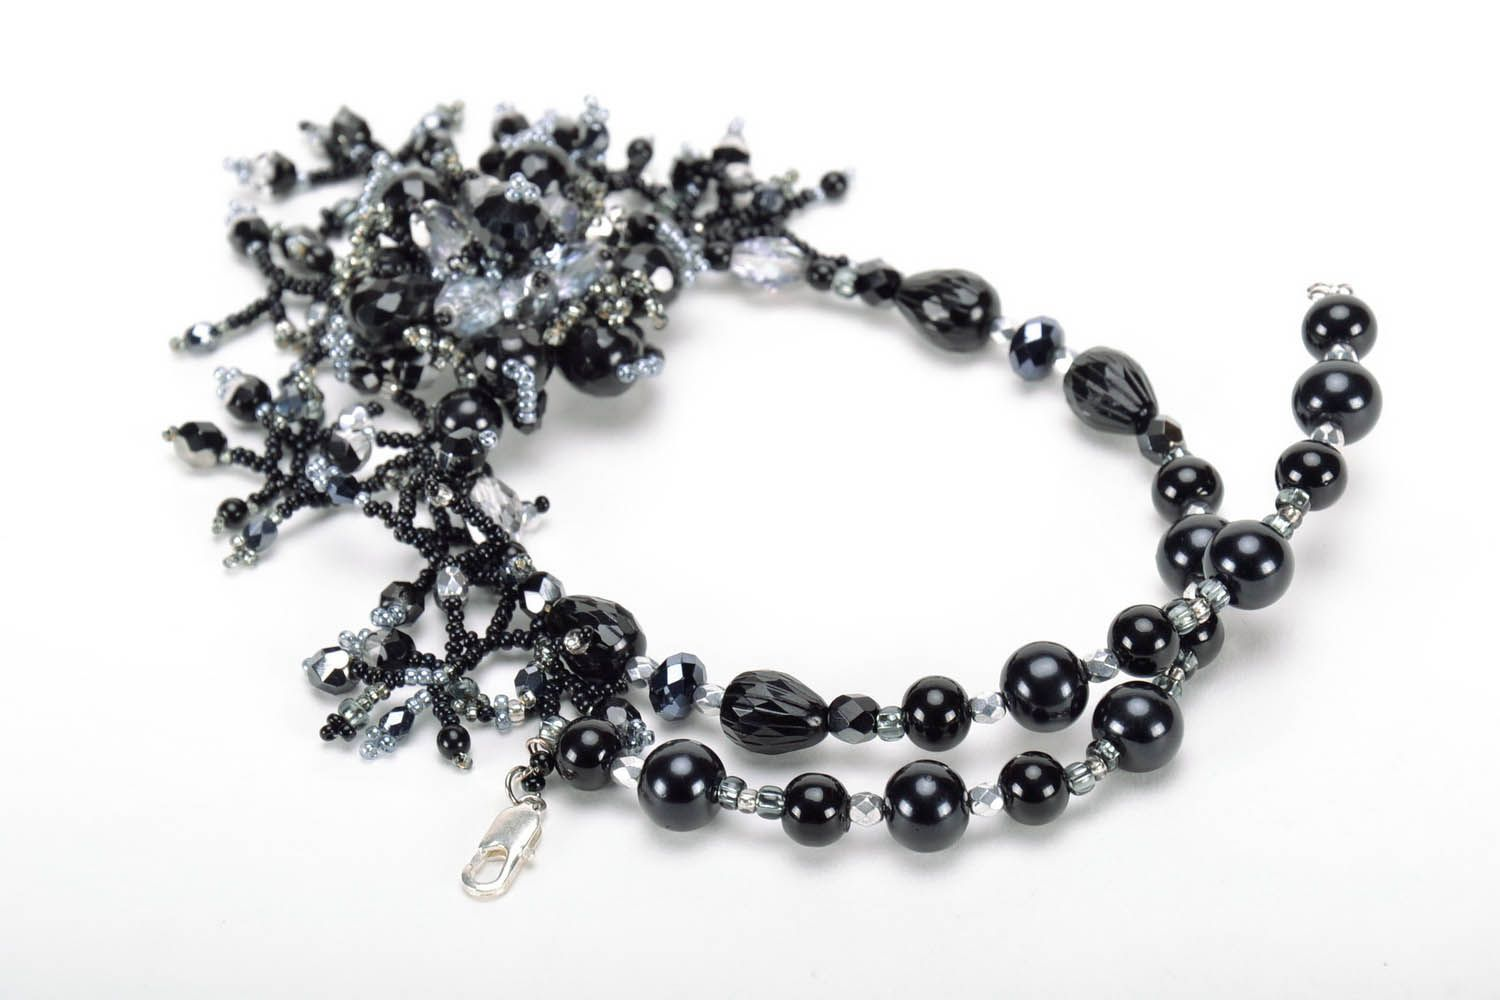 Black beaded necklace photo 4